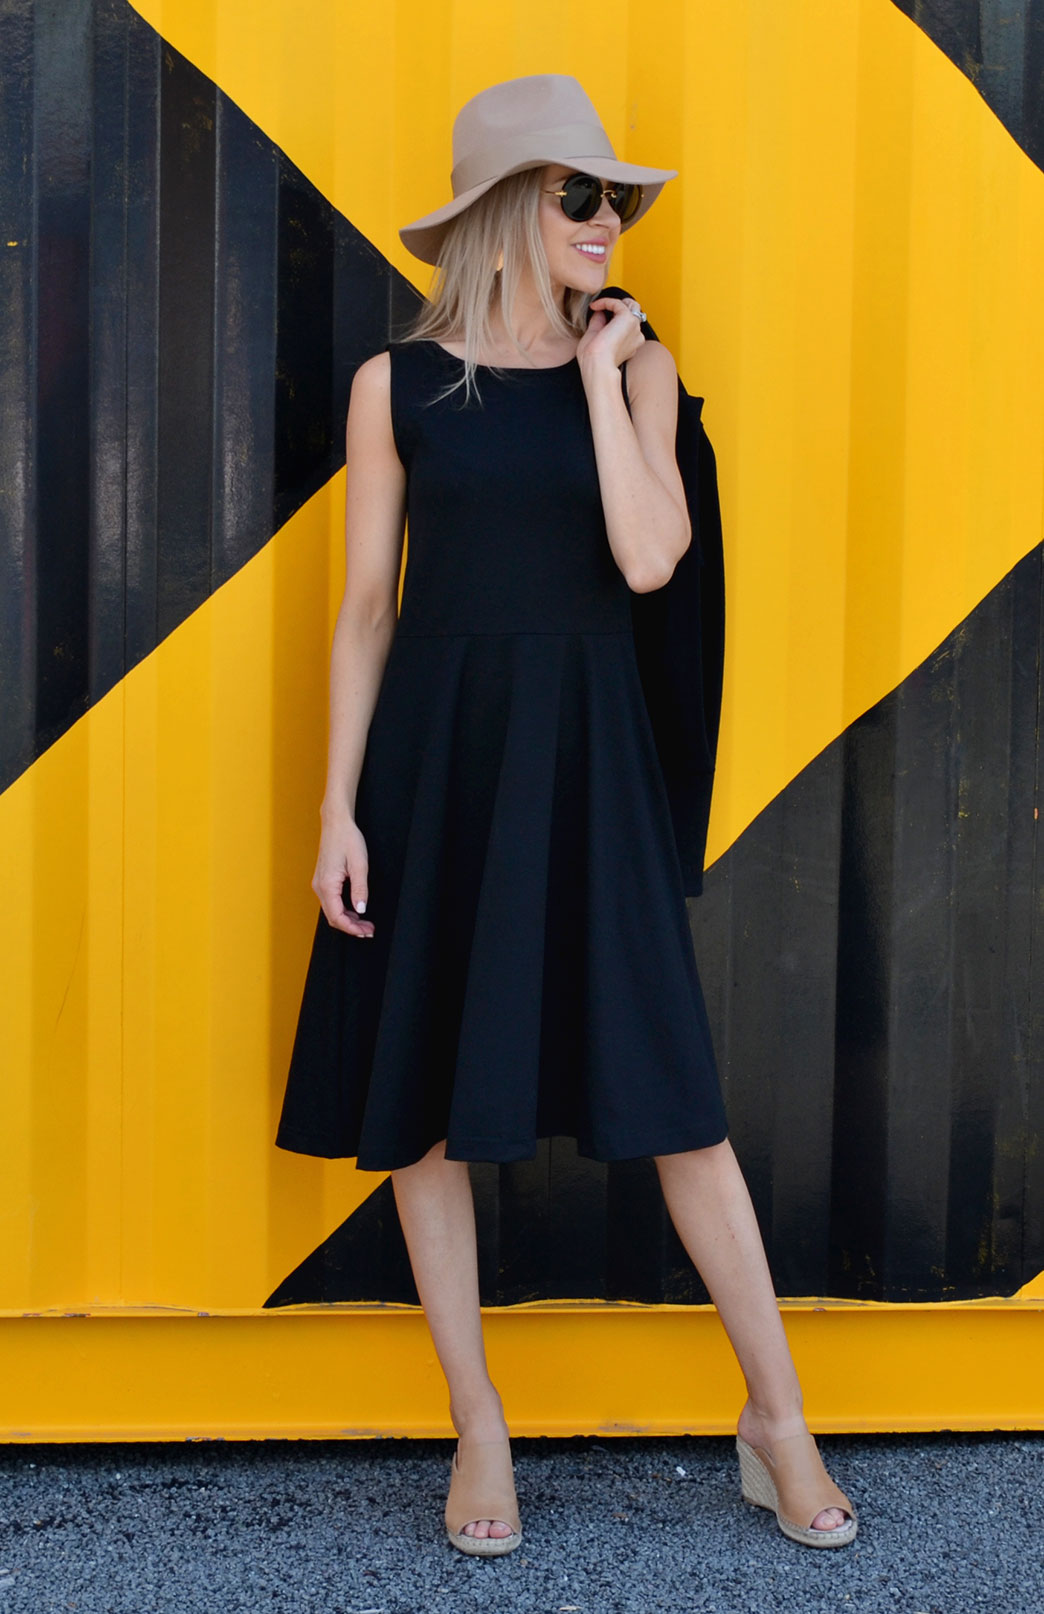 MaryAnn Fit and Flare Dress - Women's Black Merino Wool Sleeveless Dress with Pockets - Smitten Merino Tasmania Australia